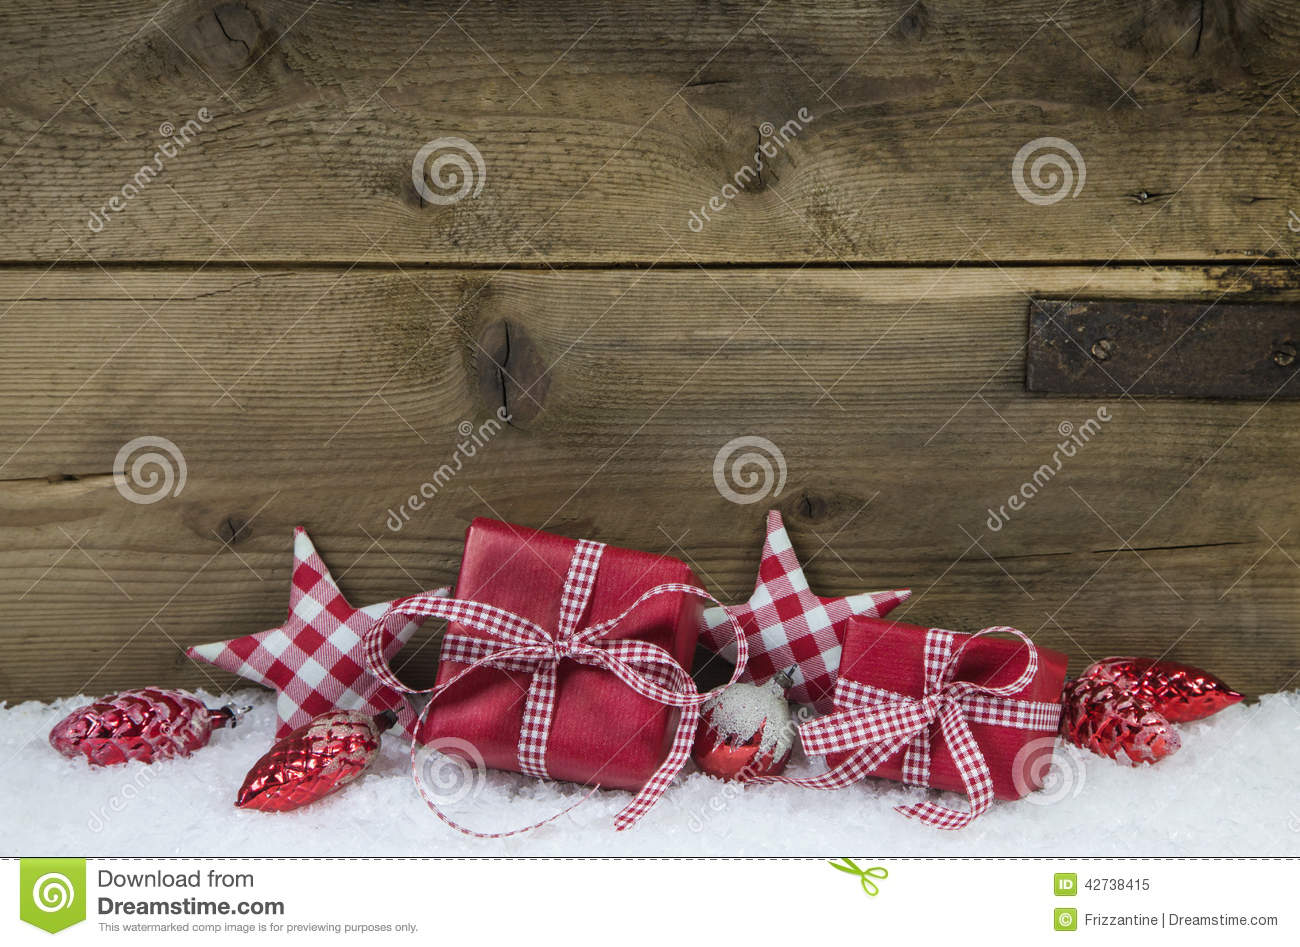 Country Christmas Background.Red Checked Christmas Presents On Wooden Country Style